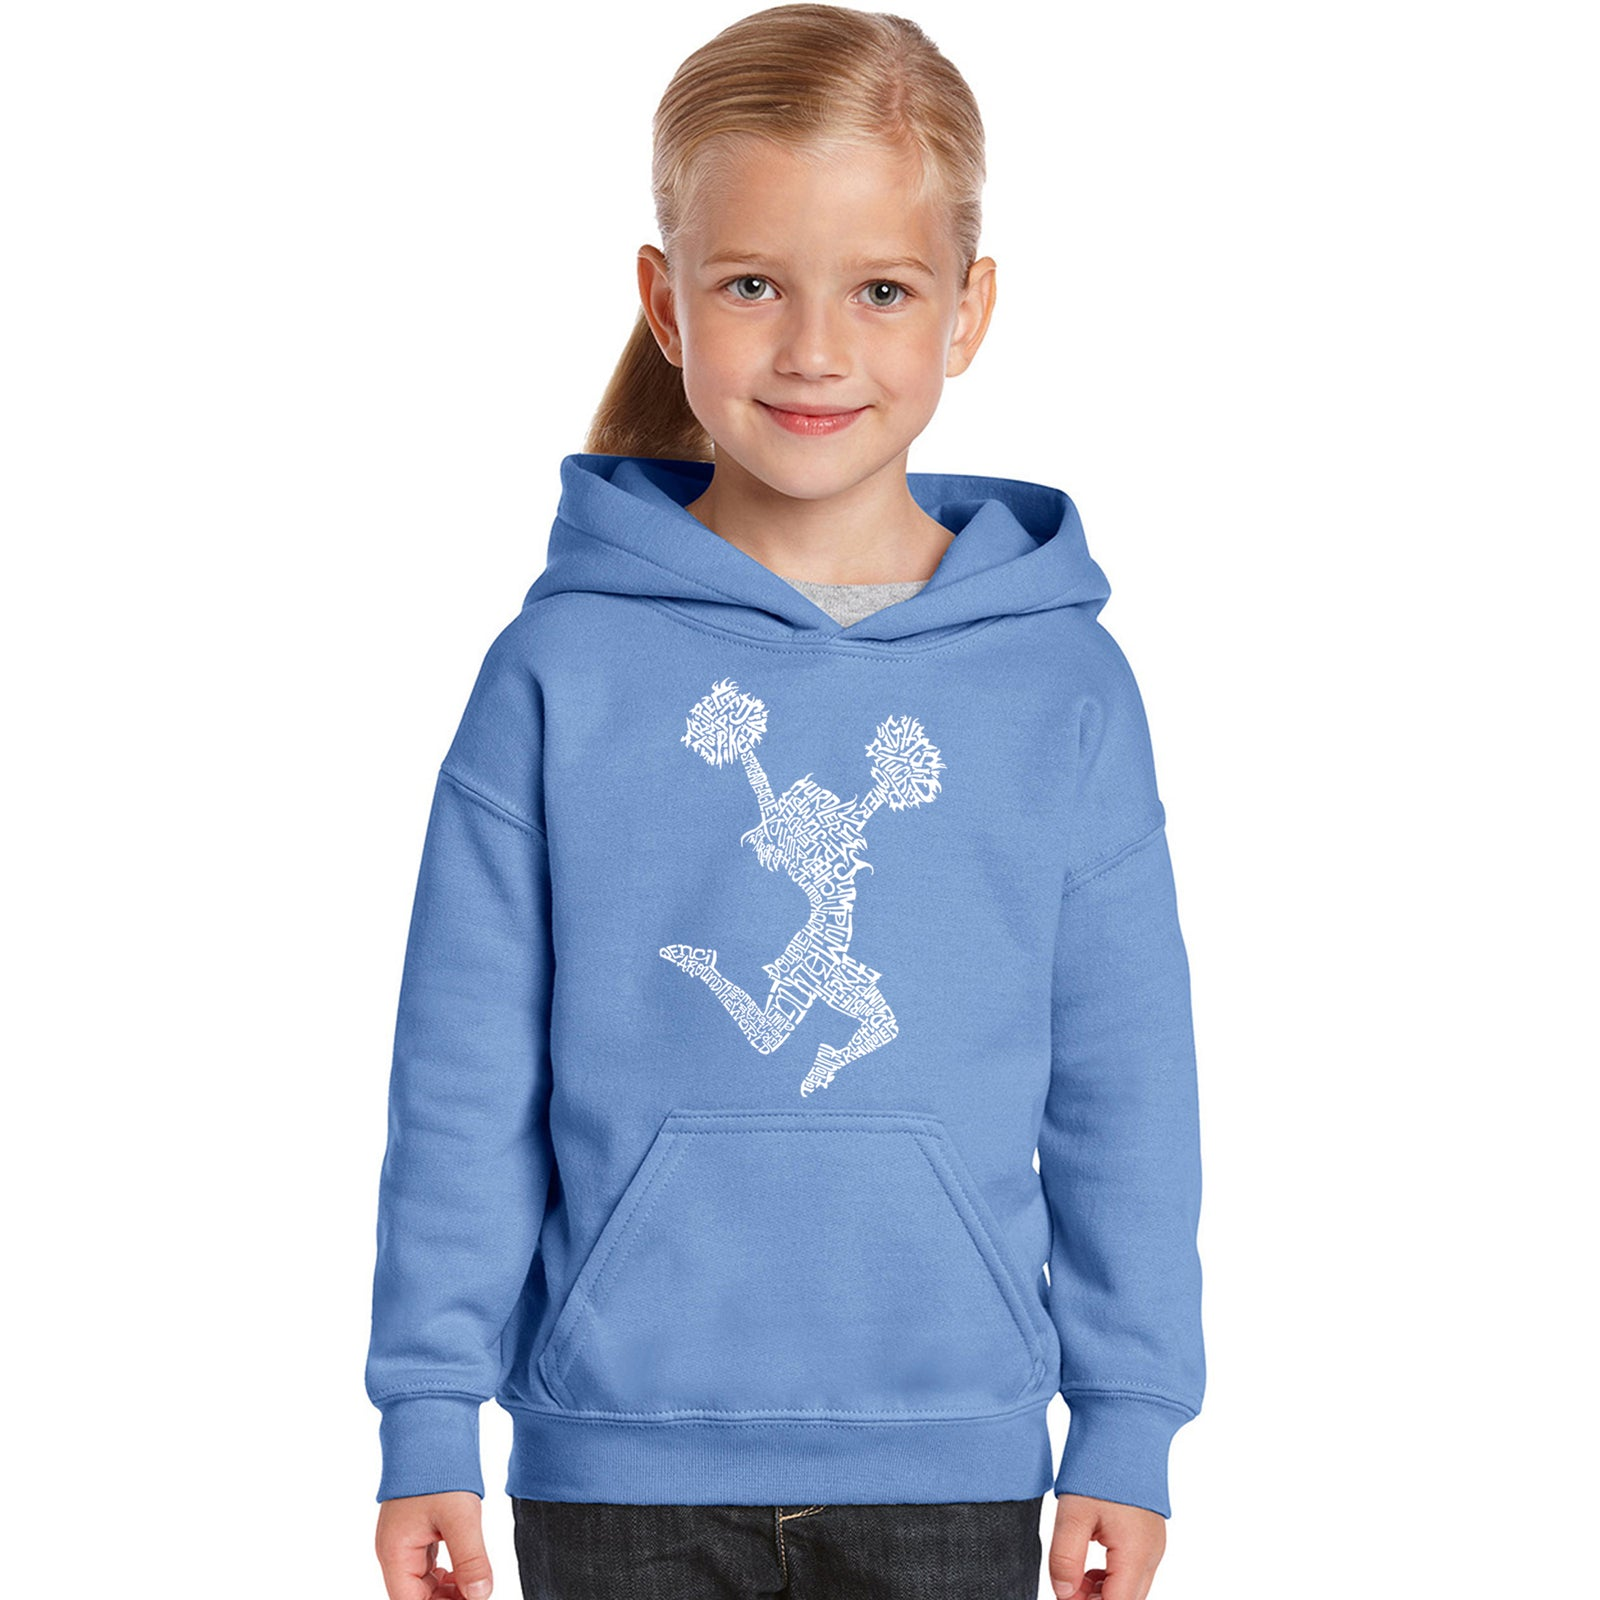 Girl's Word Art Hooded Sweatshirt - Cheer